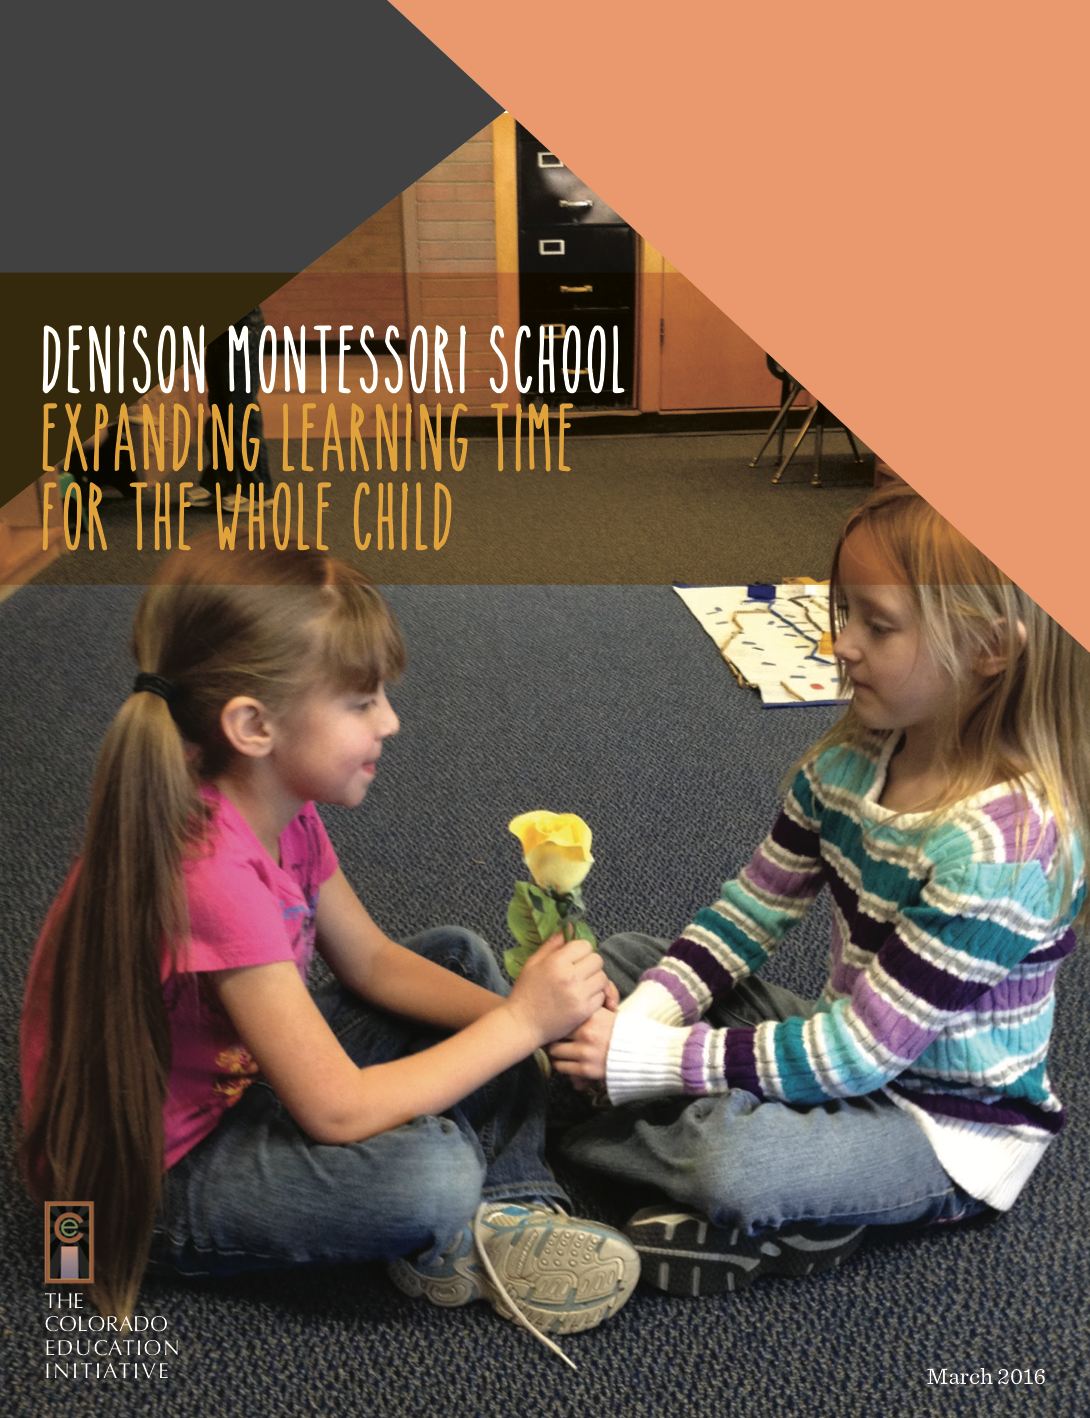 denison montessori school: expanding learning time for the whole child, march 2016